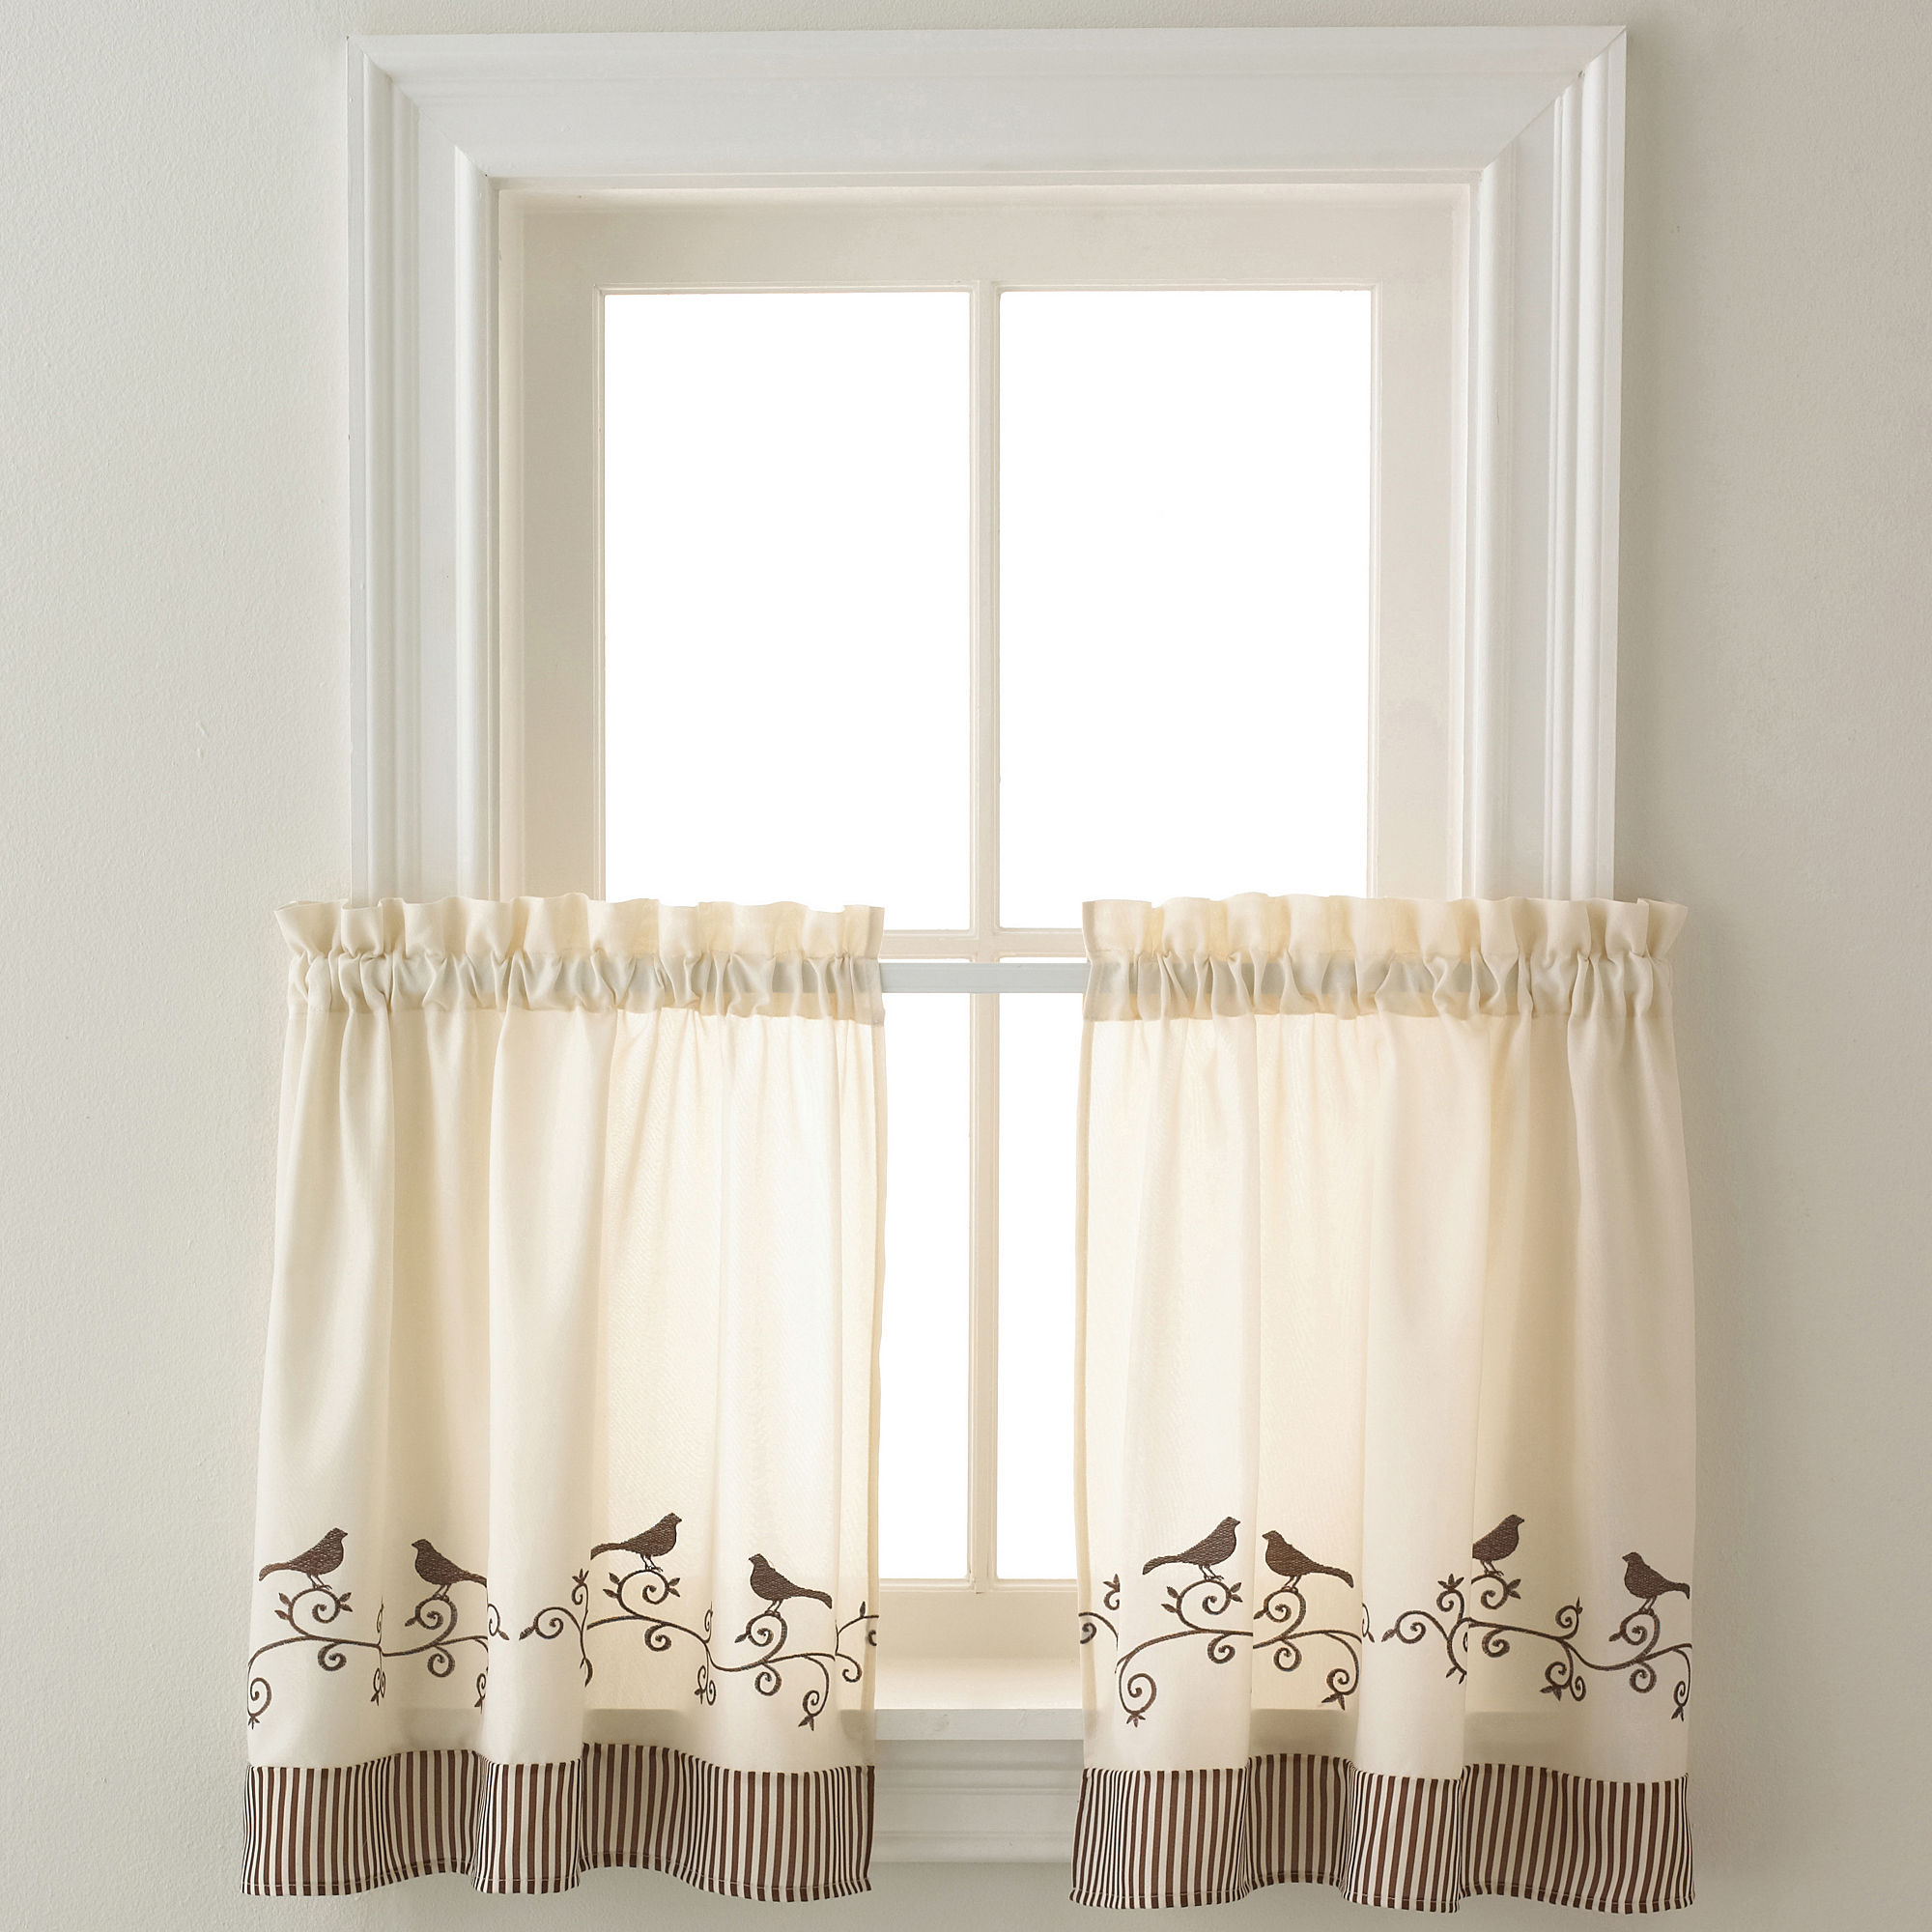 jcpenney window treatment catalog search